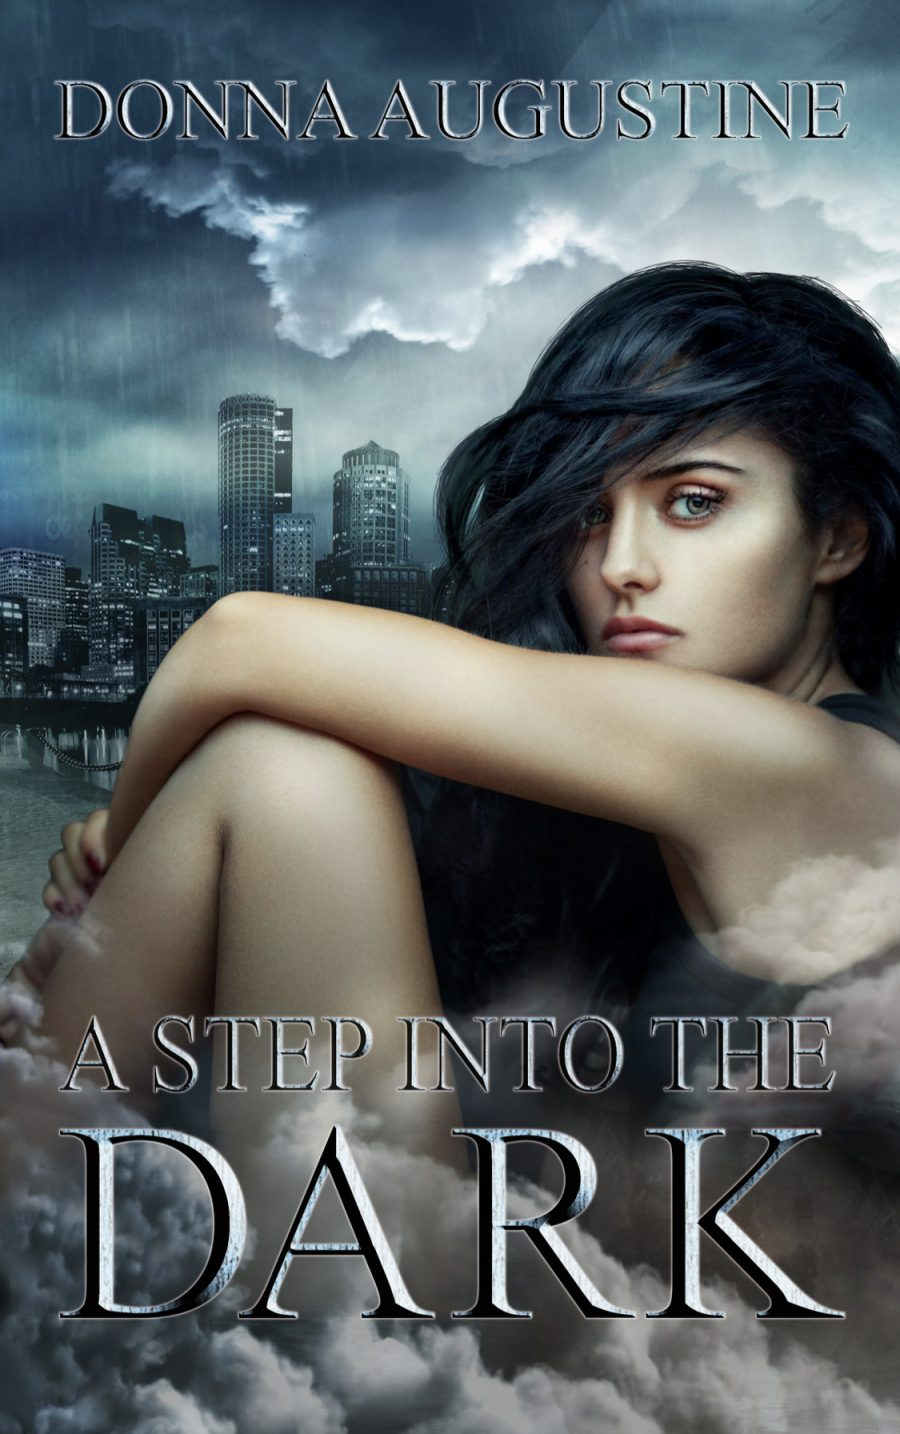 A Step Into the Dark by Donna Augustine - A Book Review #BookReview #Review #UrbanFantasy #UF #4Star #KU #KindleUnlimited